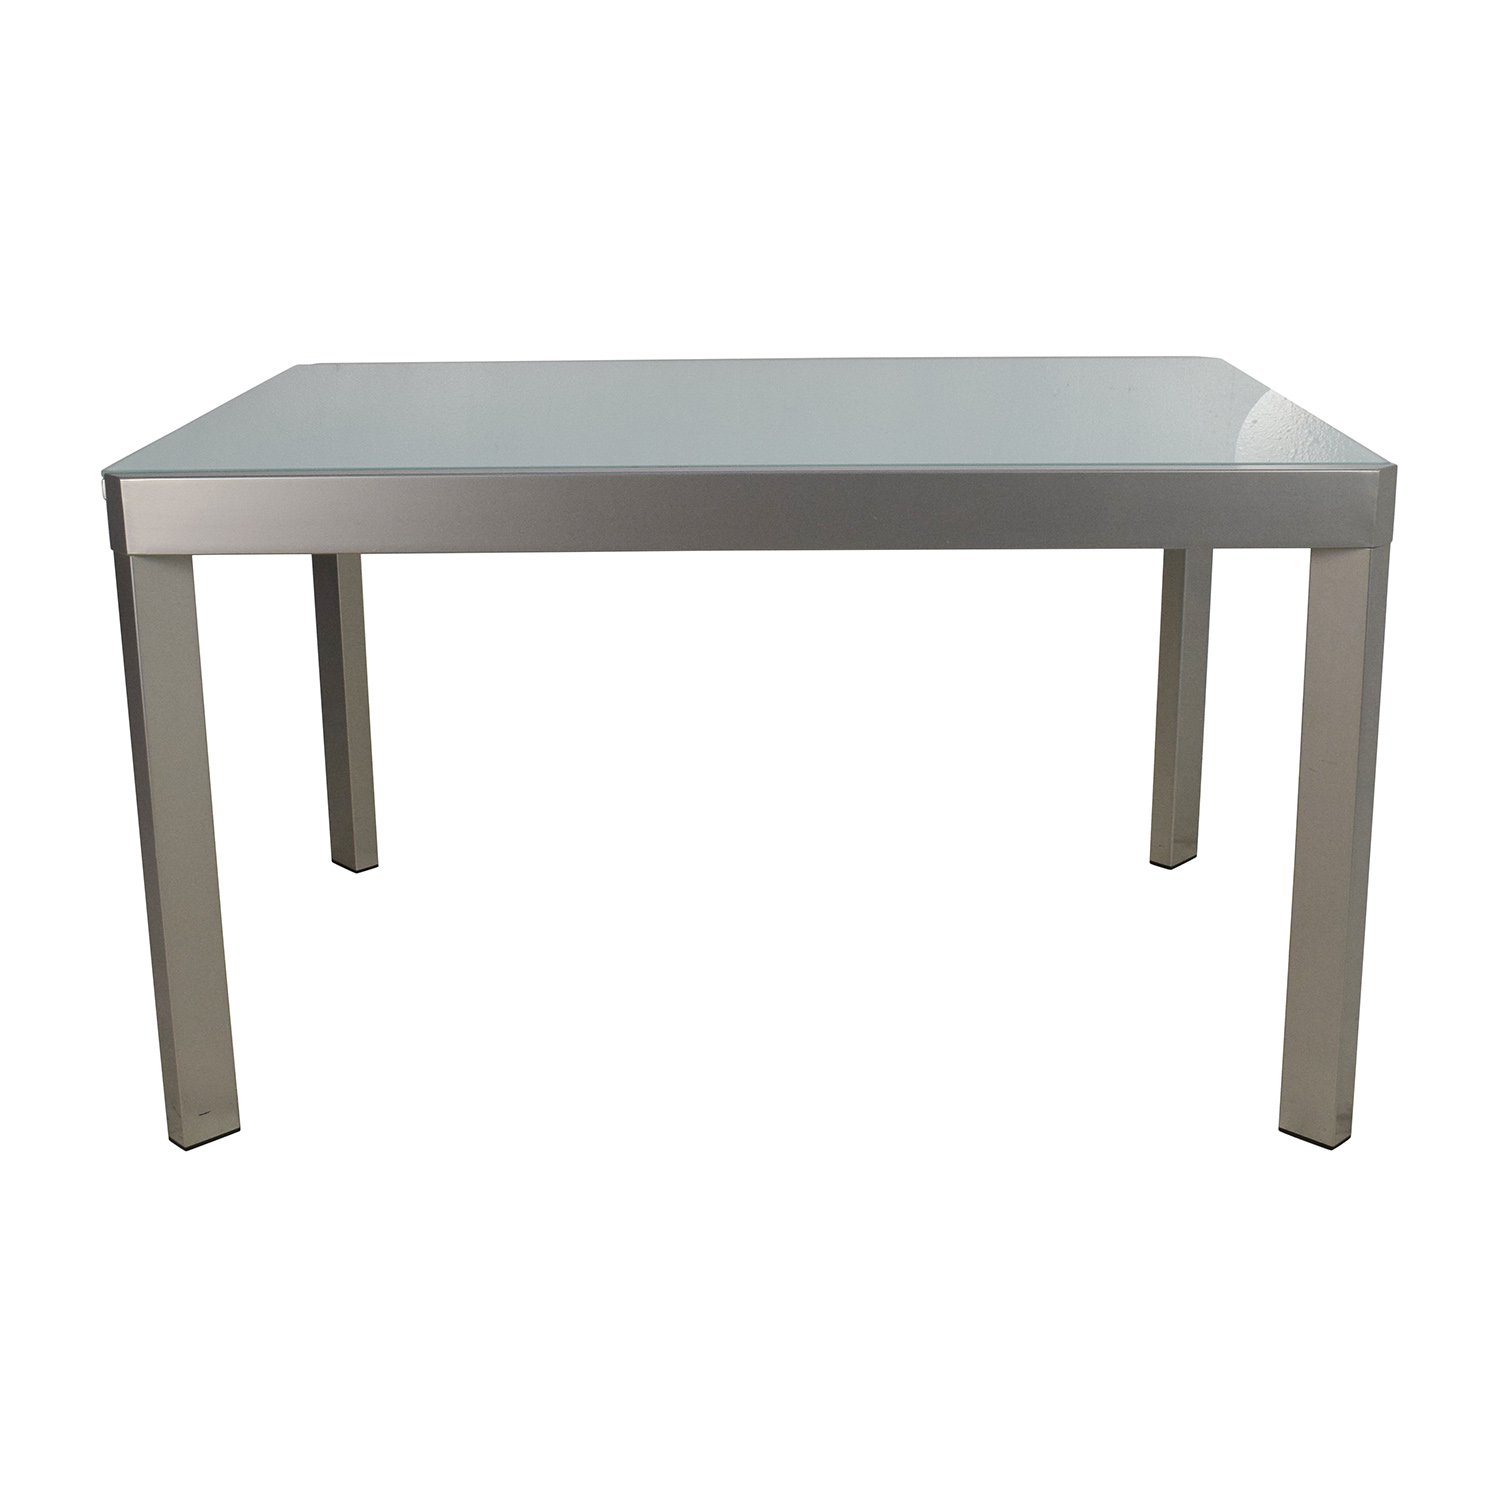 Calligaris Calligaris Extendable Glass Dining Table discount